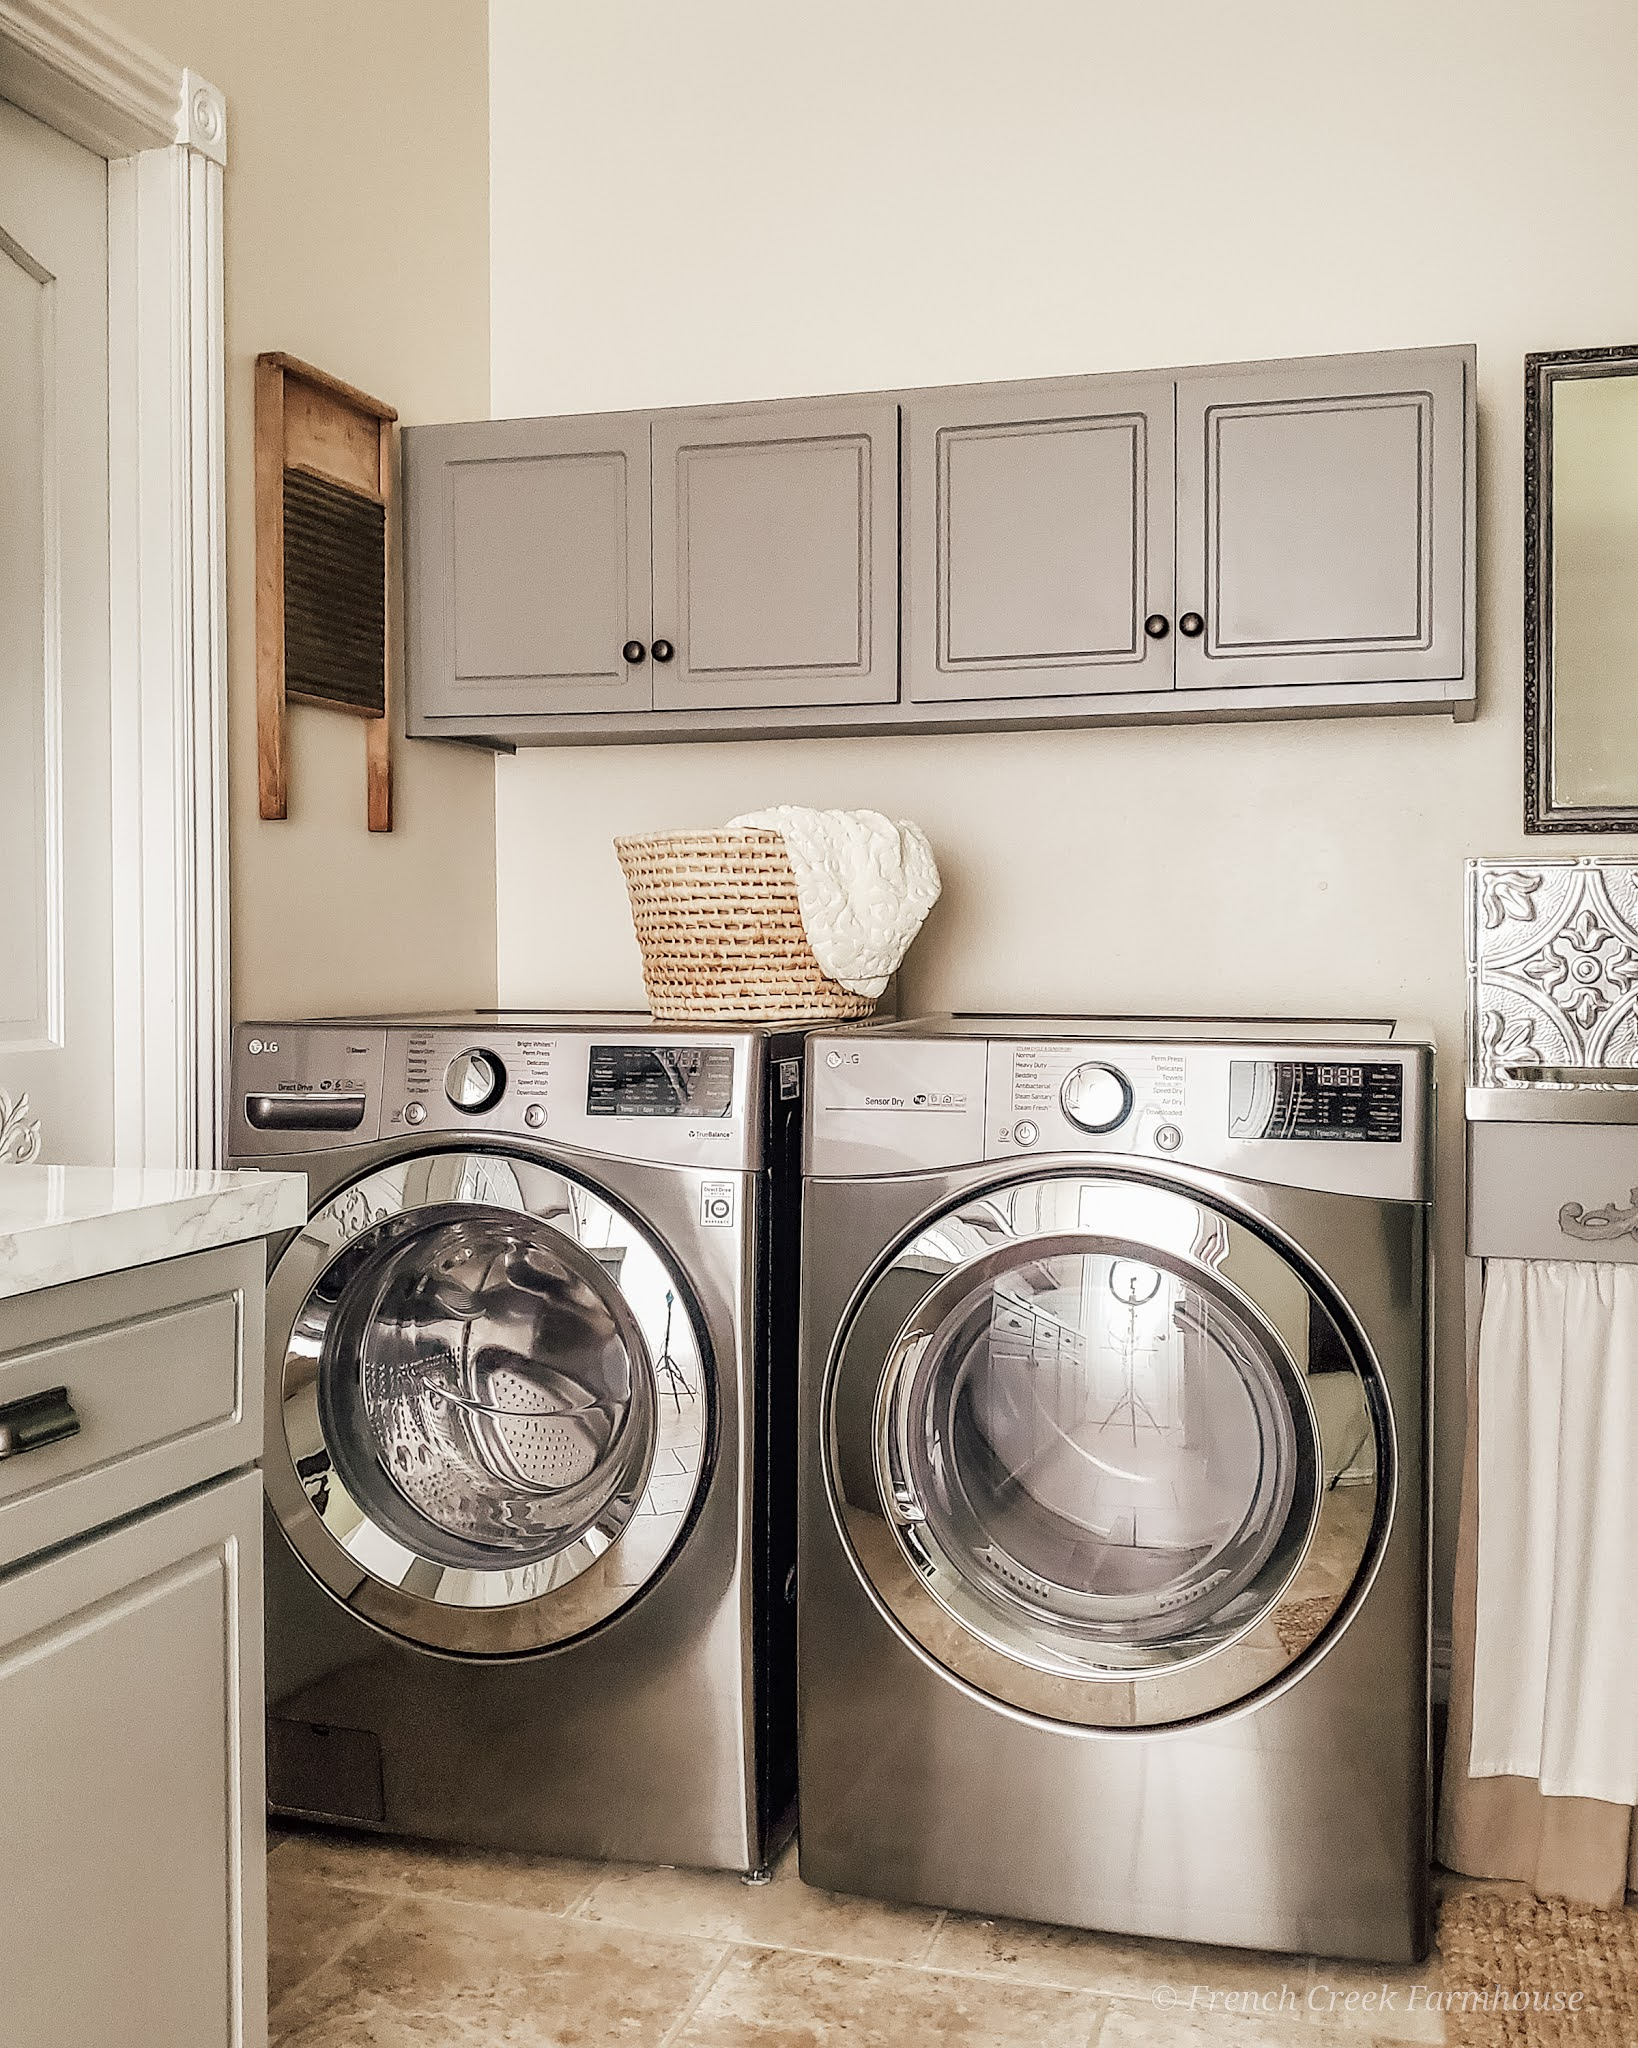 Decorating with vintage items adds a true farmhouse feeling to our laundry room